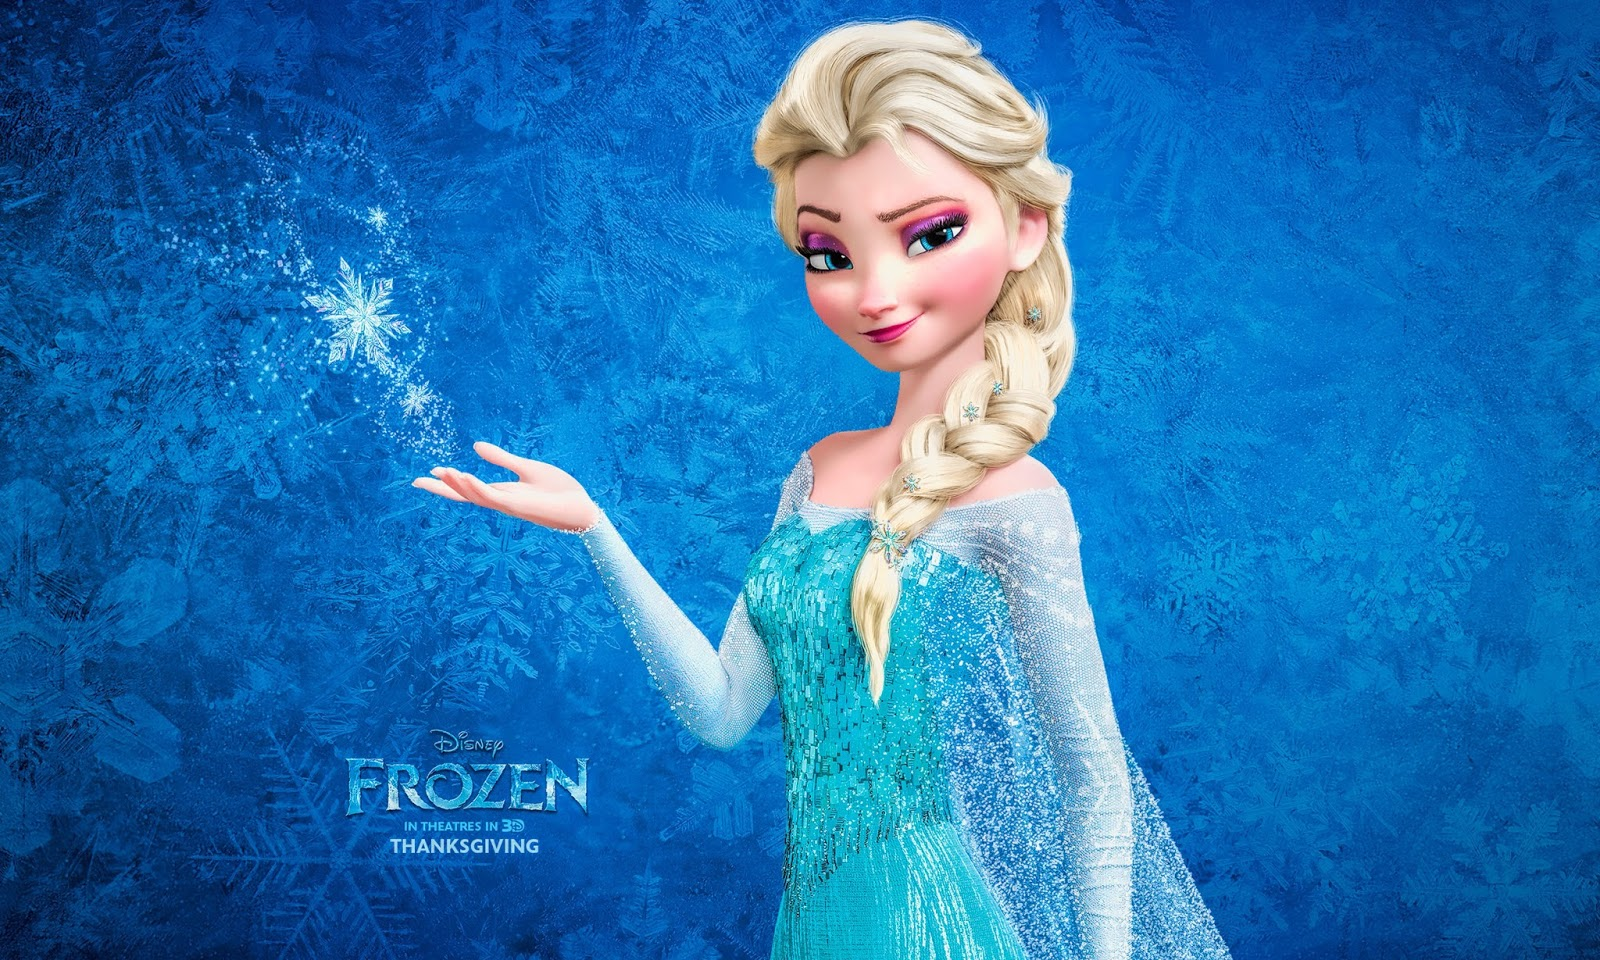 beautiful frozen movie hd wallpapers #5358